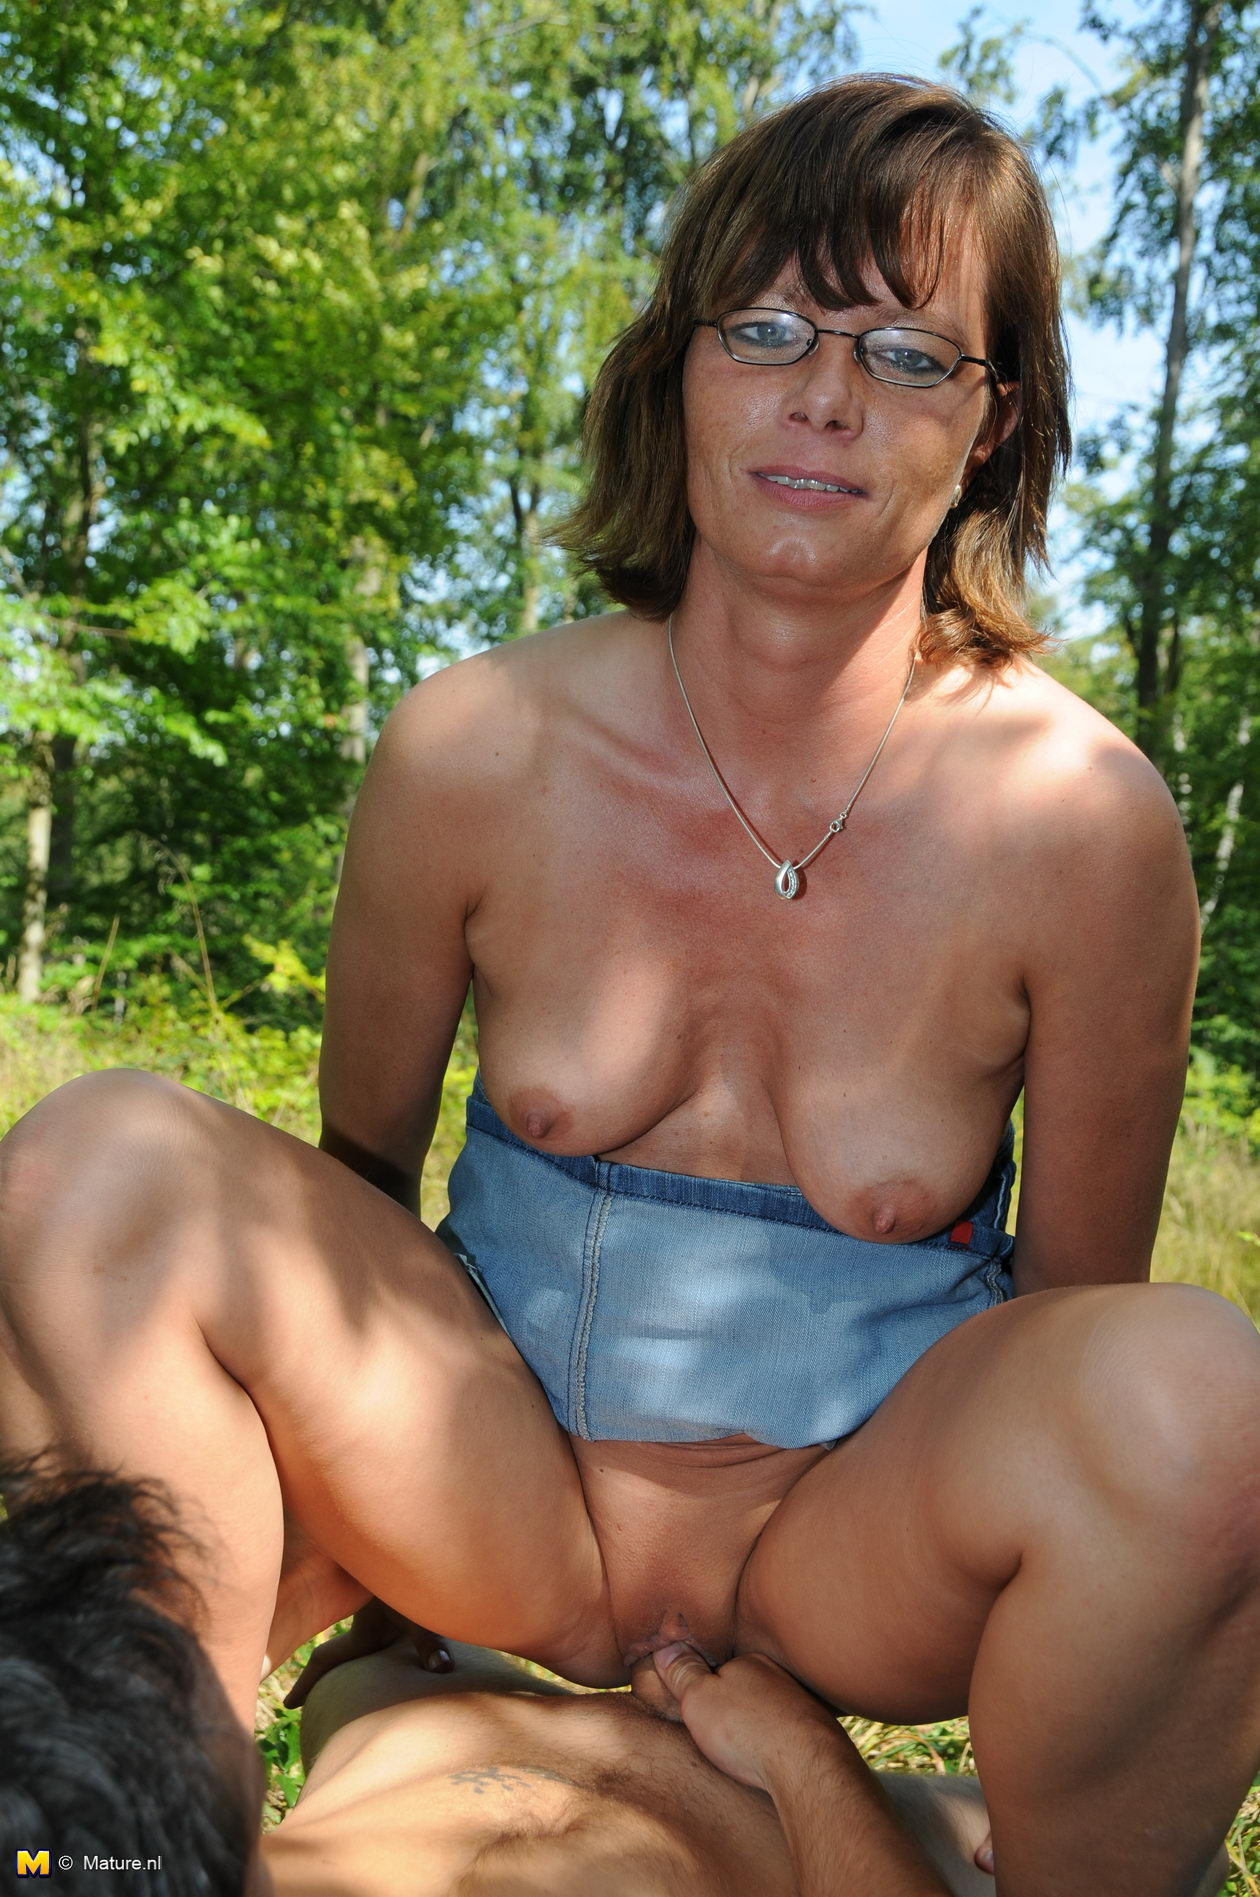 Guy wild in the woods nude casual concurrence